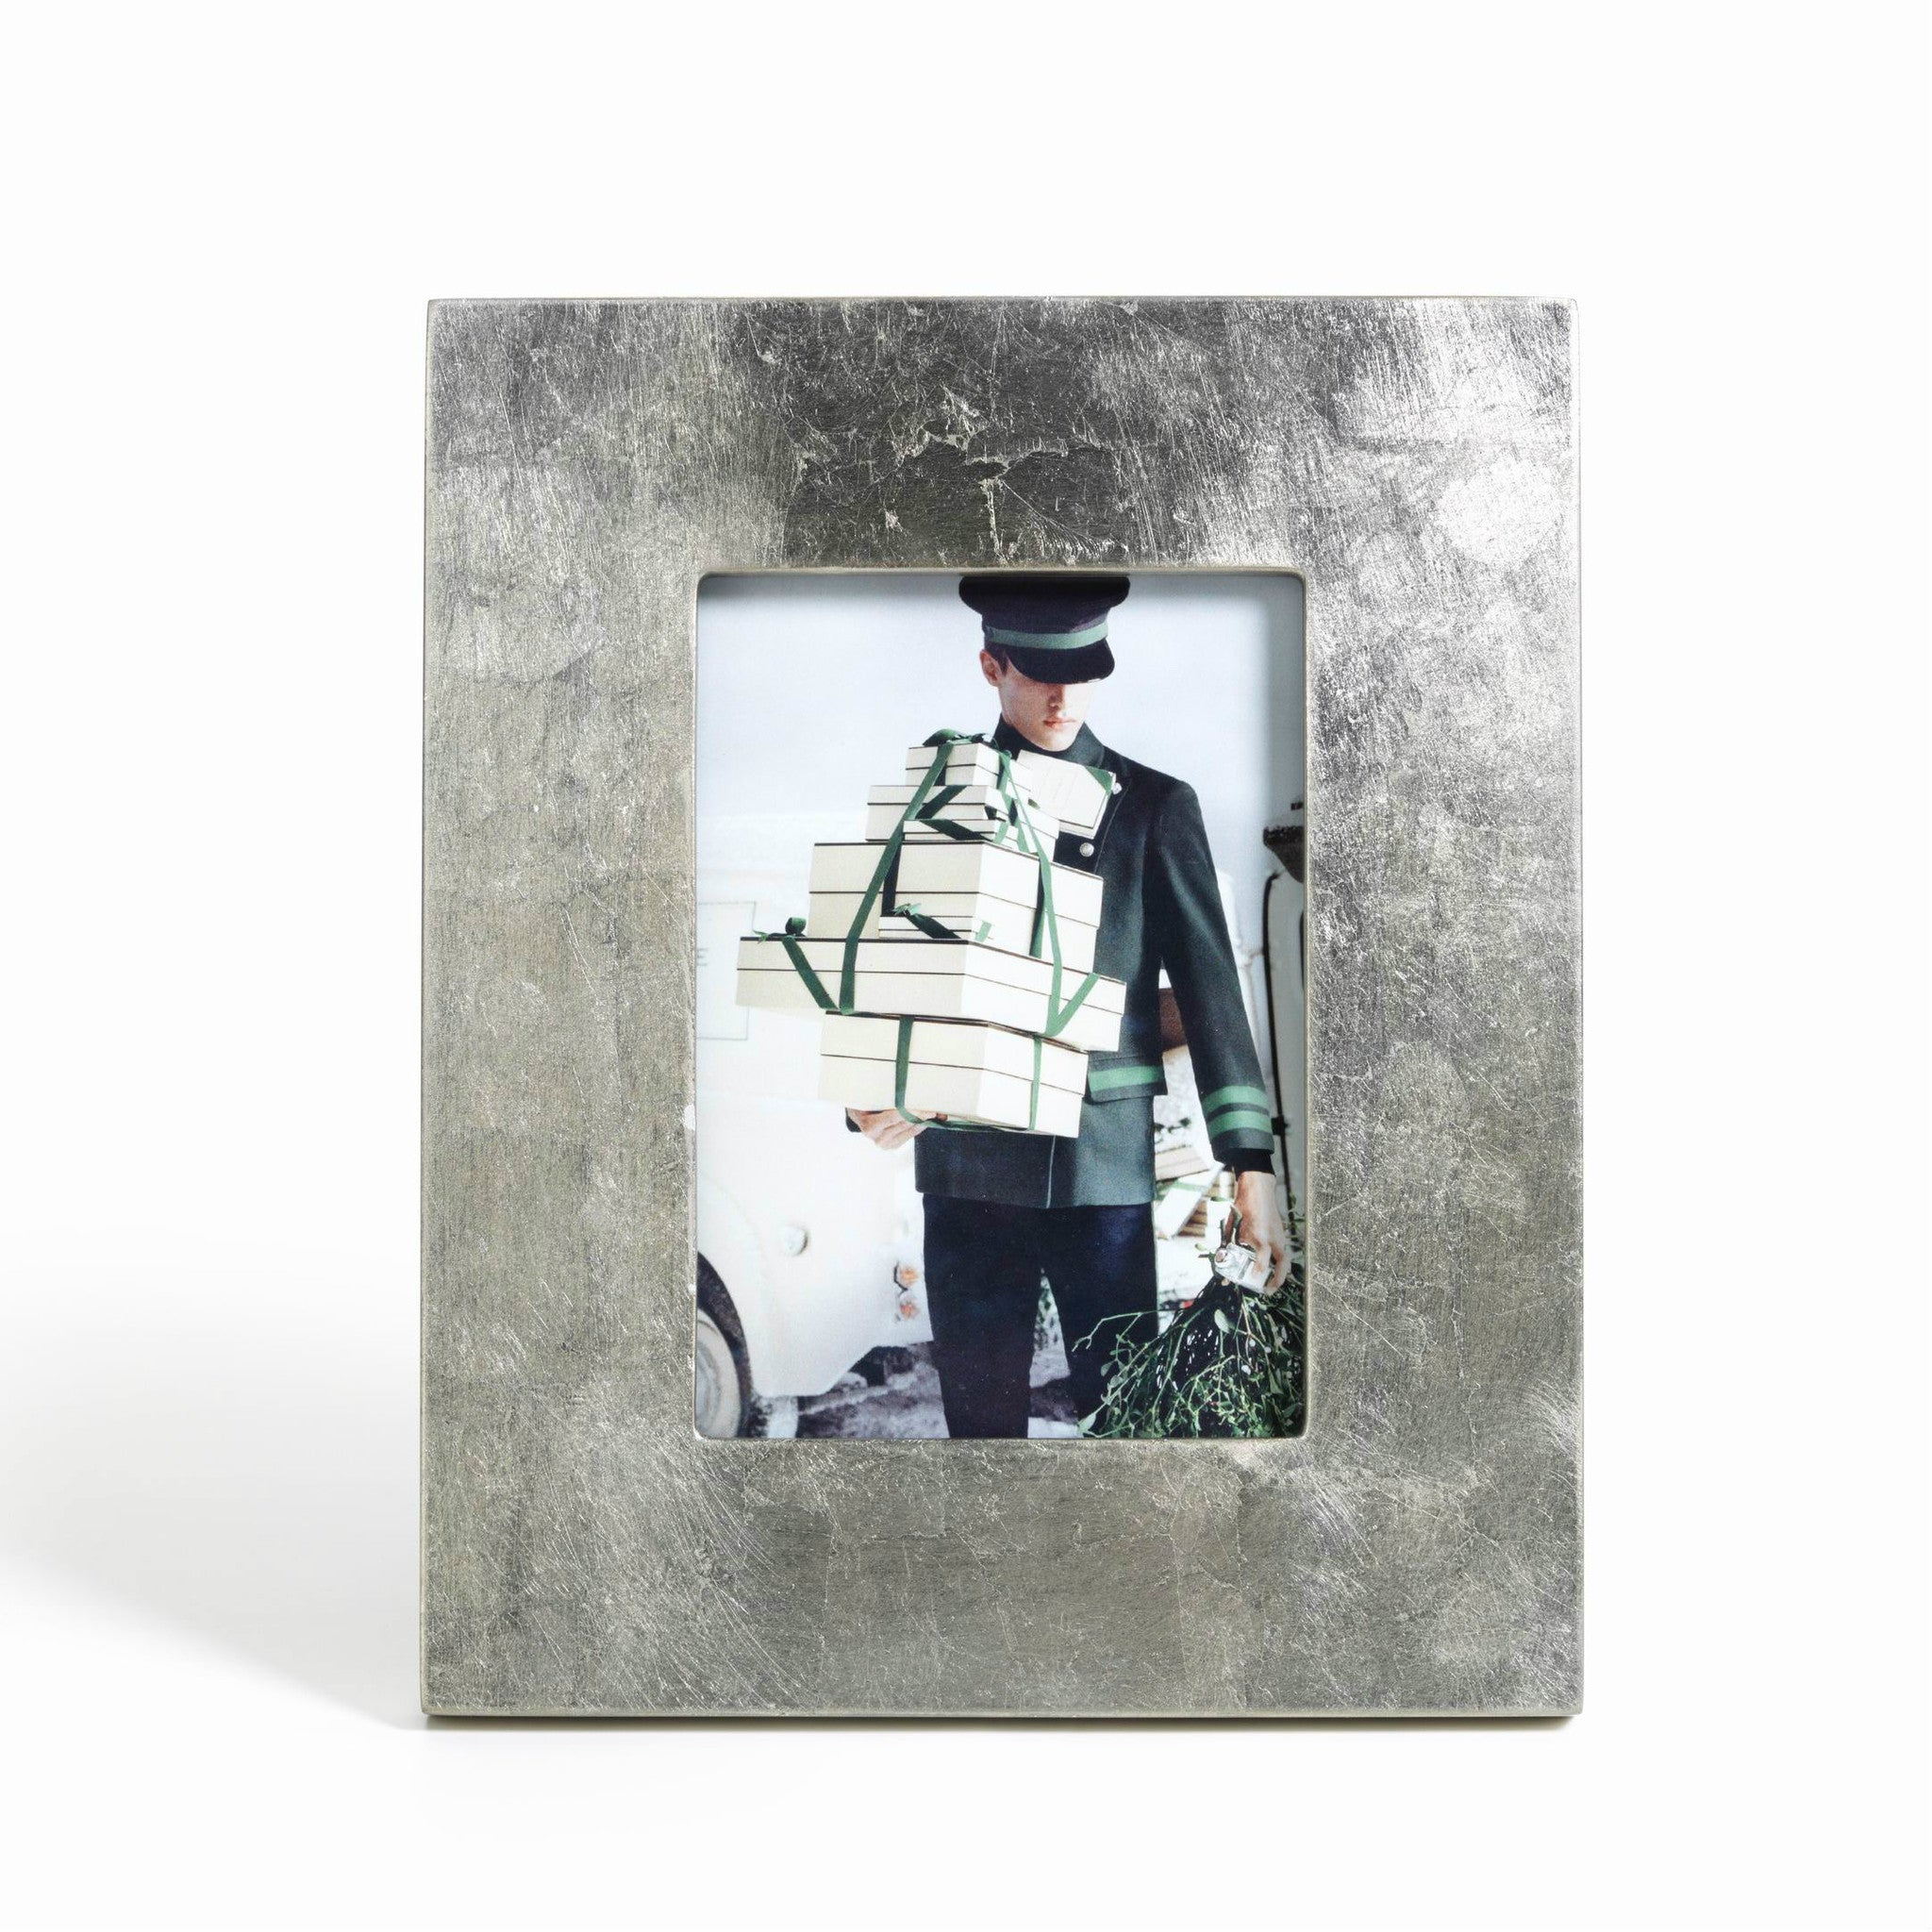 Silver Leaf Photo Frames - Large - CARLYLE AVENUE - 3